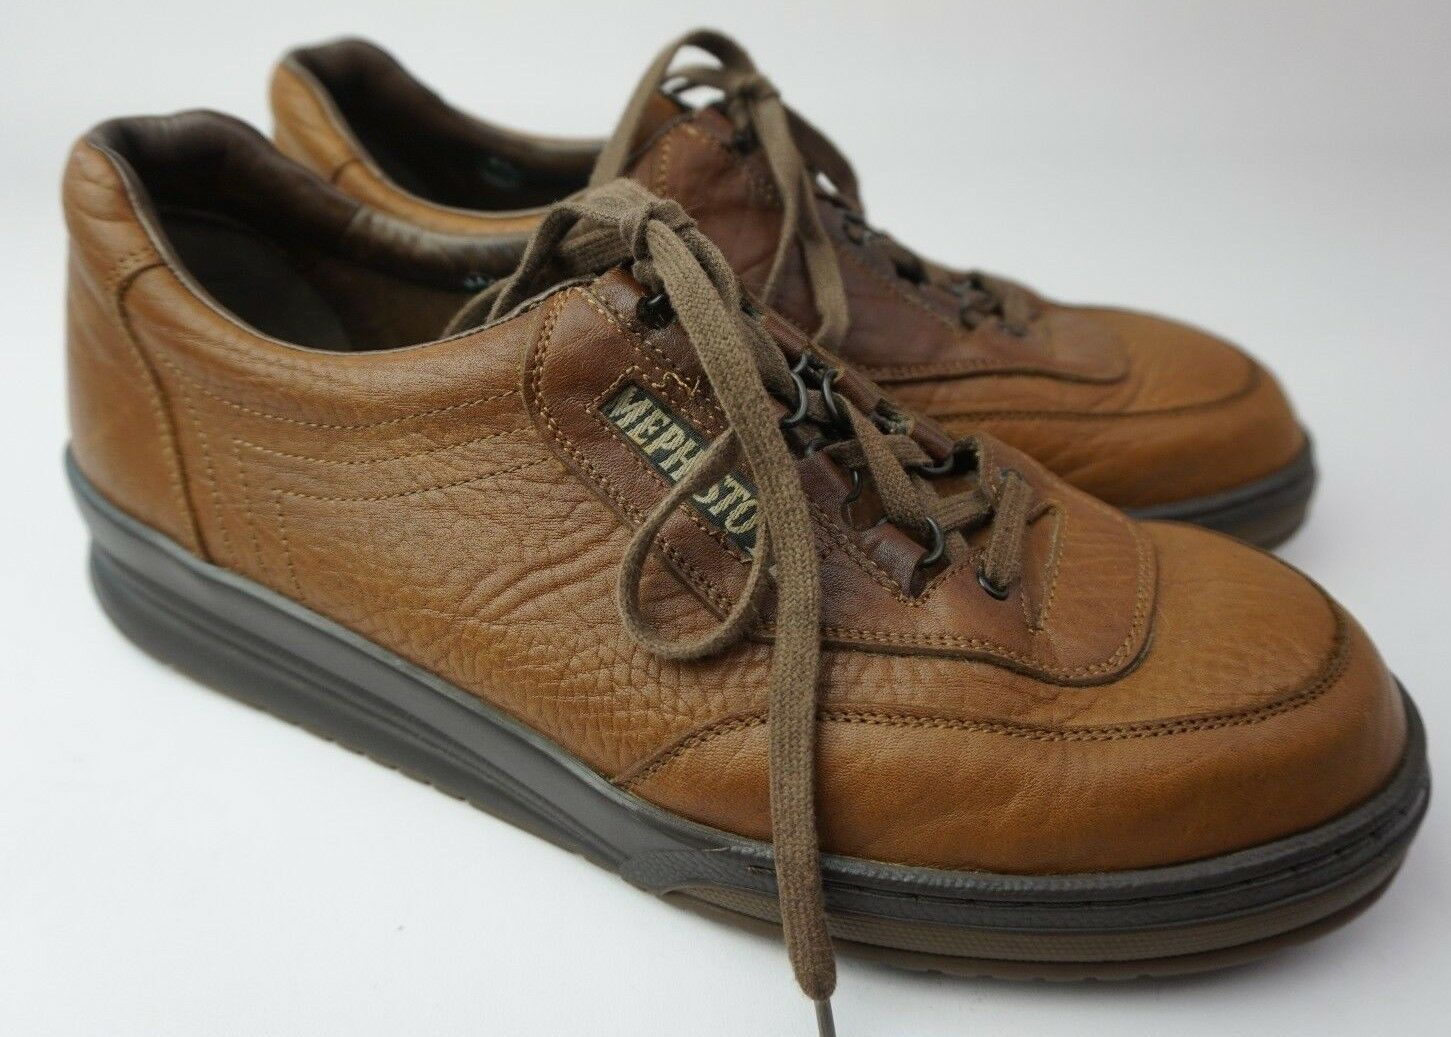 Mephisto Match Men's Walking shoes Brown Full Grain Leather Size US 11